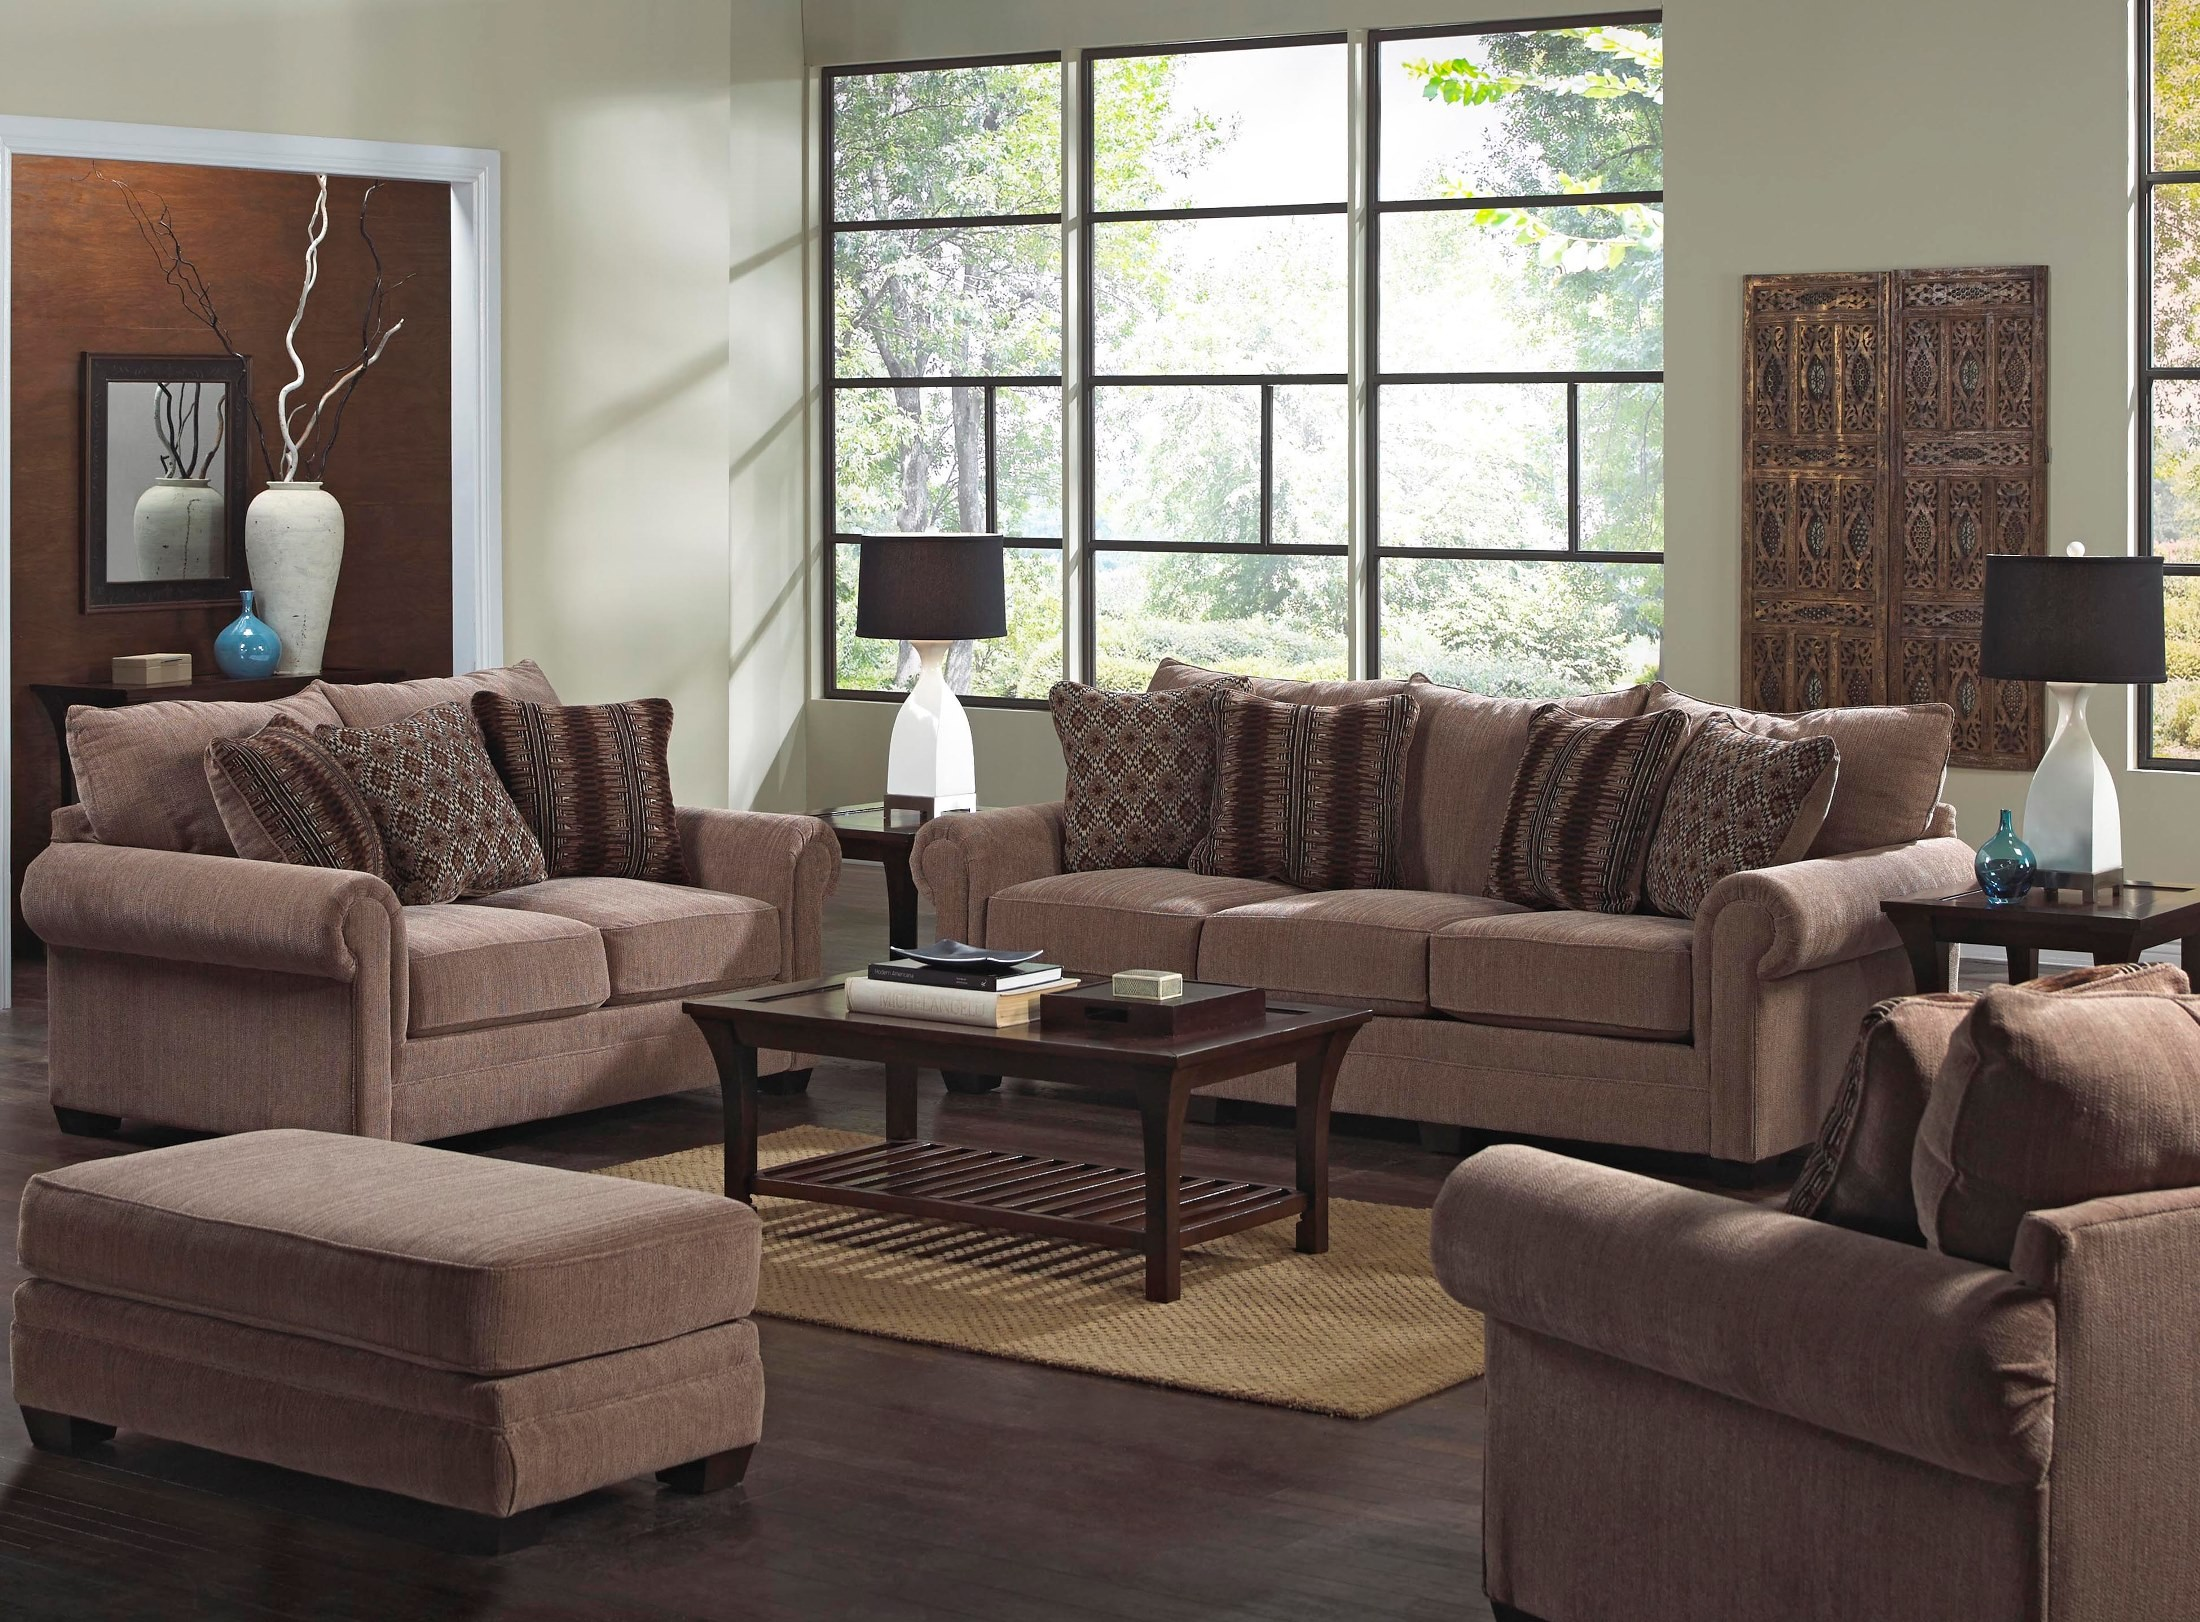 Anniston Saddle Living Room Set From Jackson